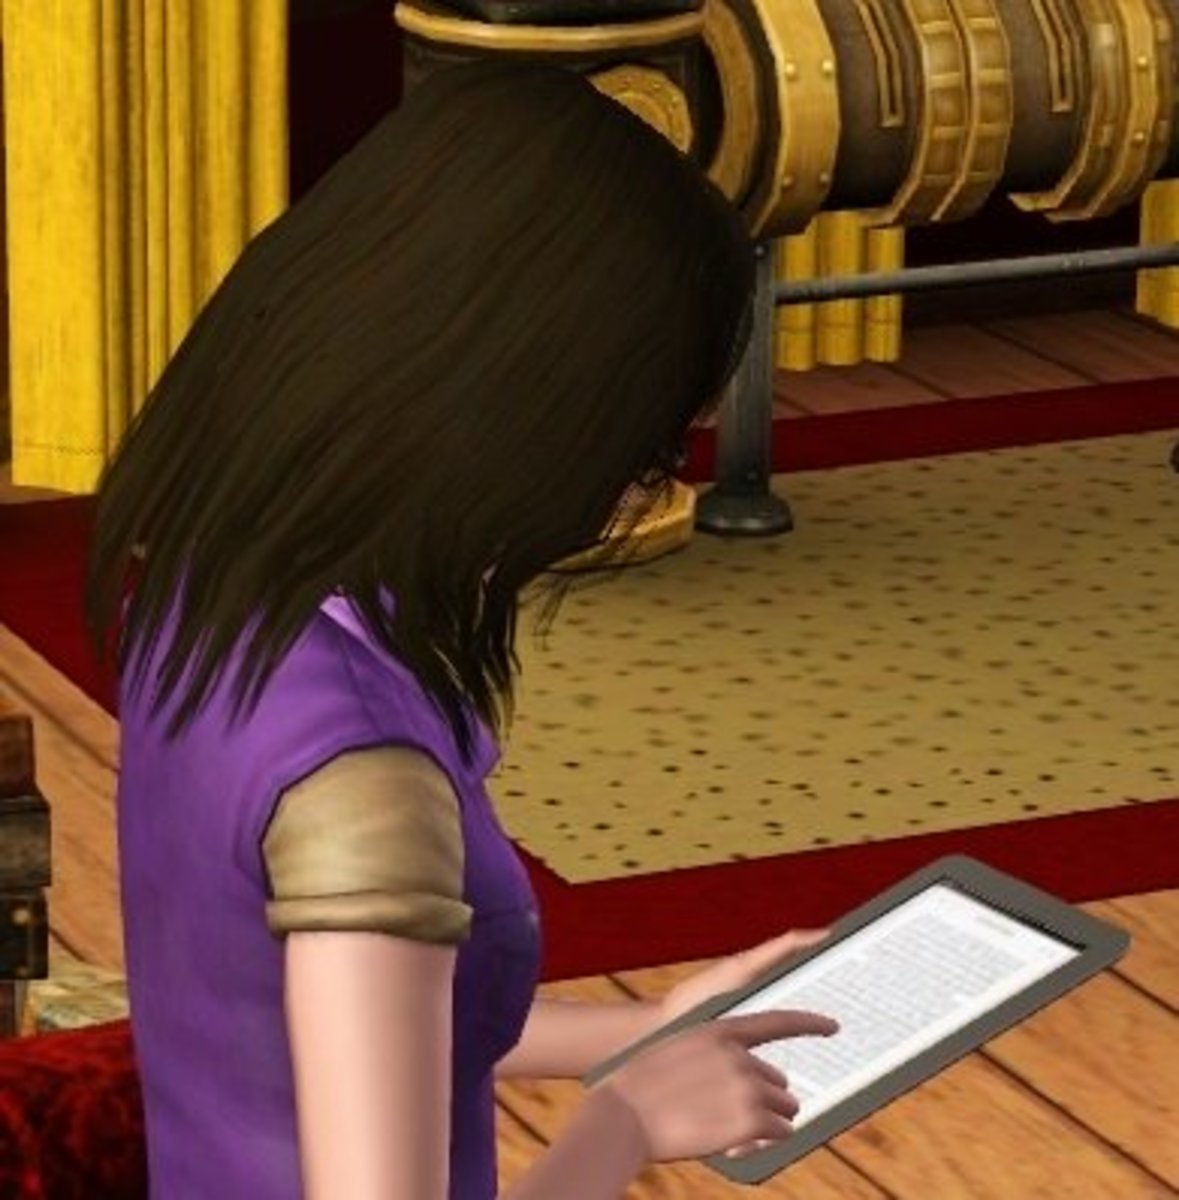 The Sims' MultiTab 6000, in-use.